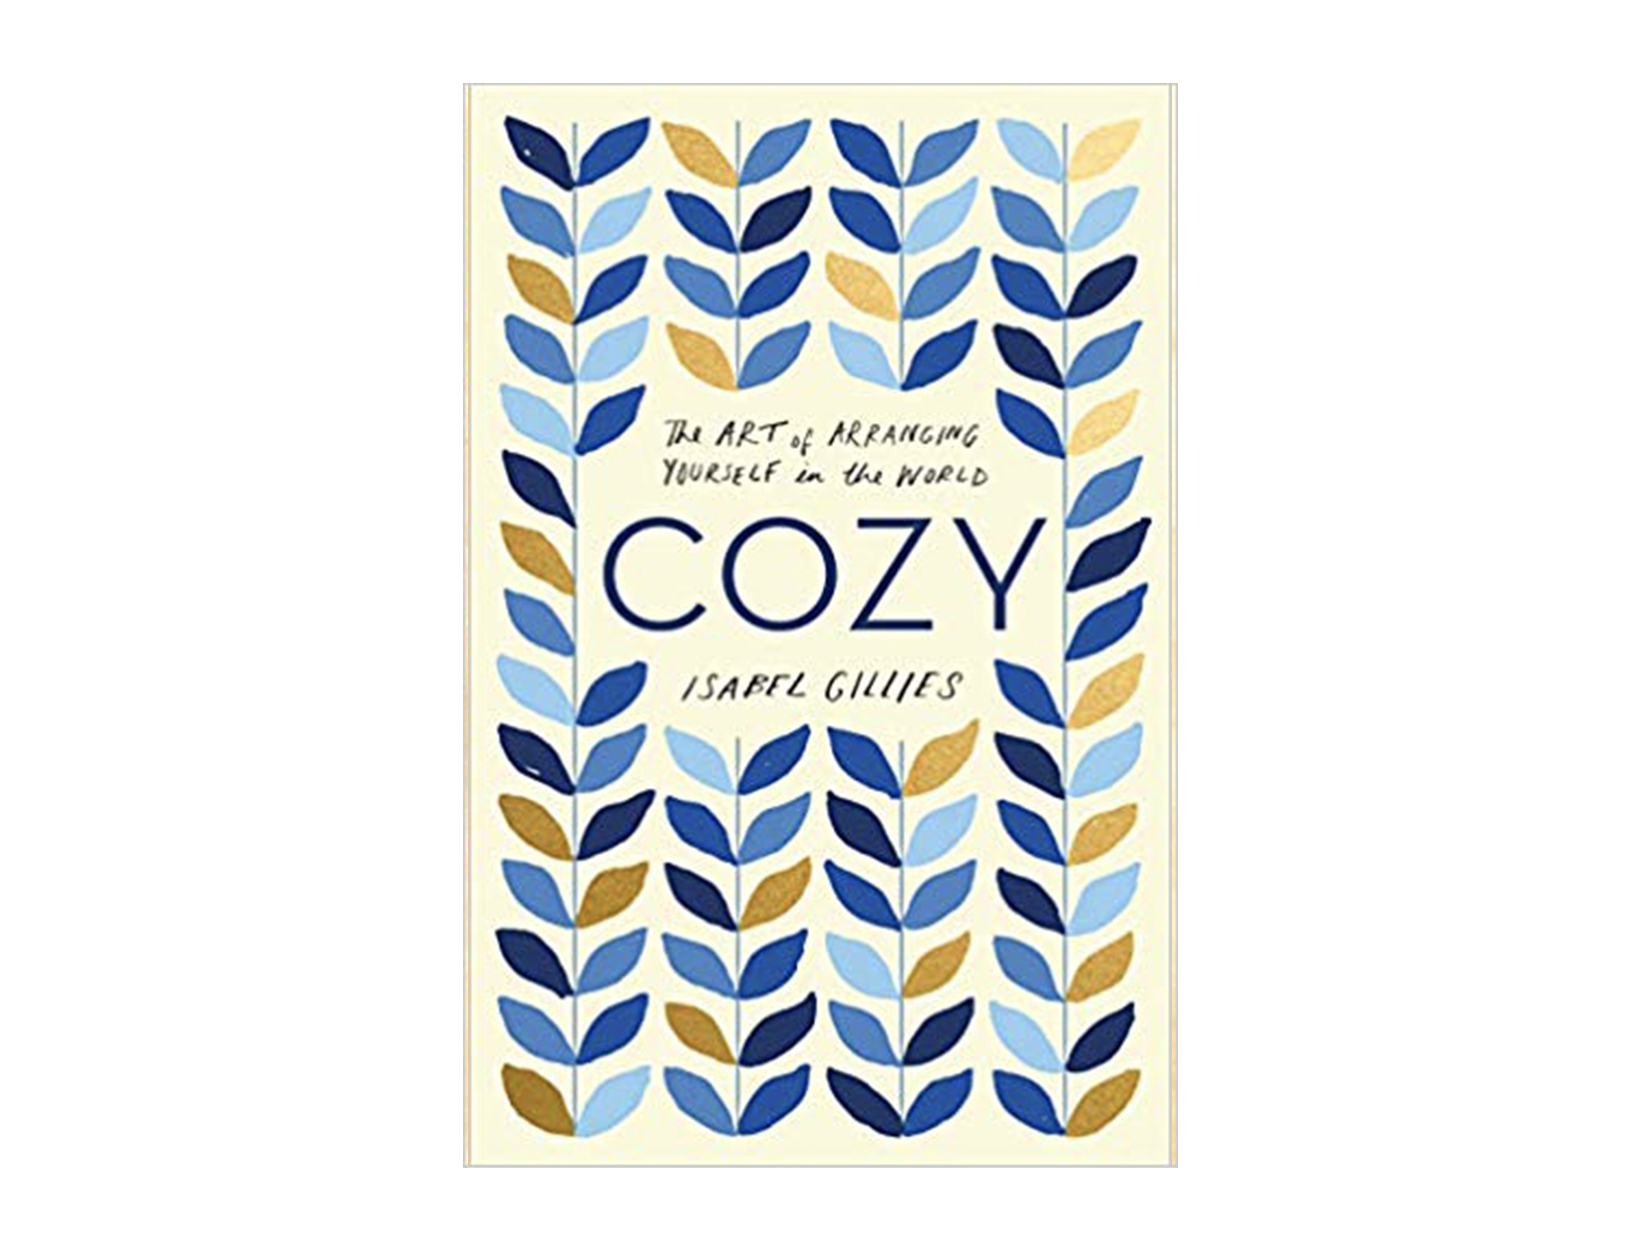 <em>Cozy</em> by Isabel Gillies